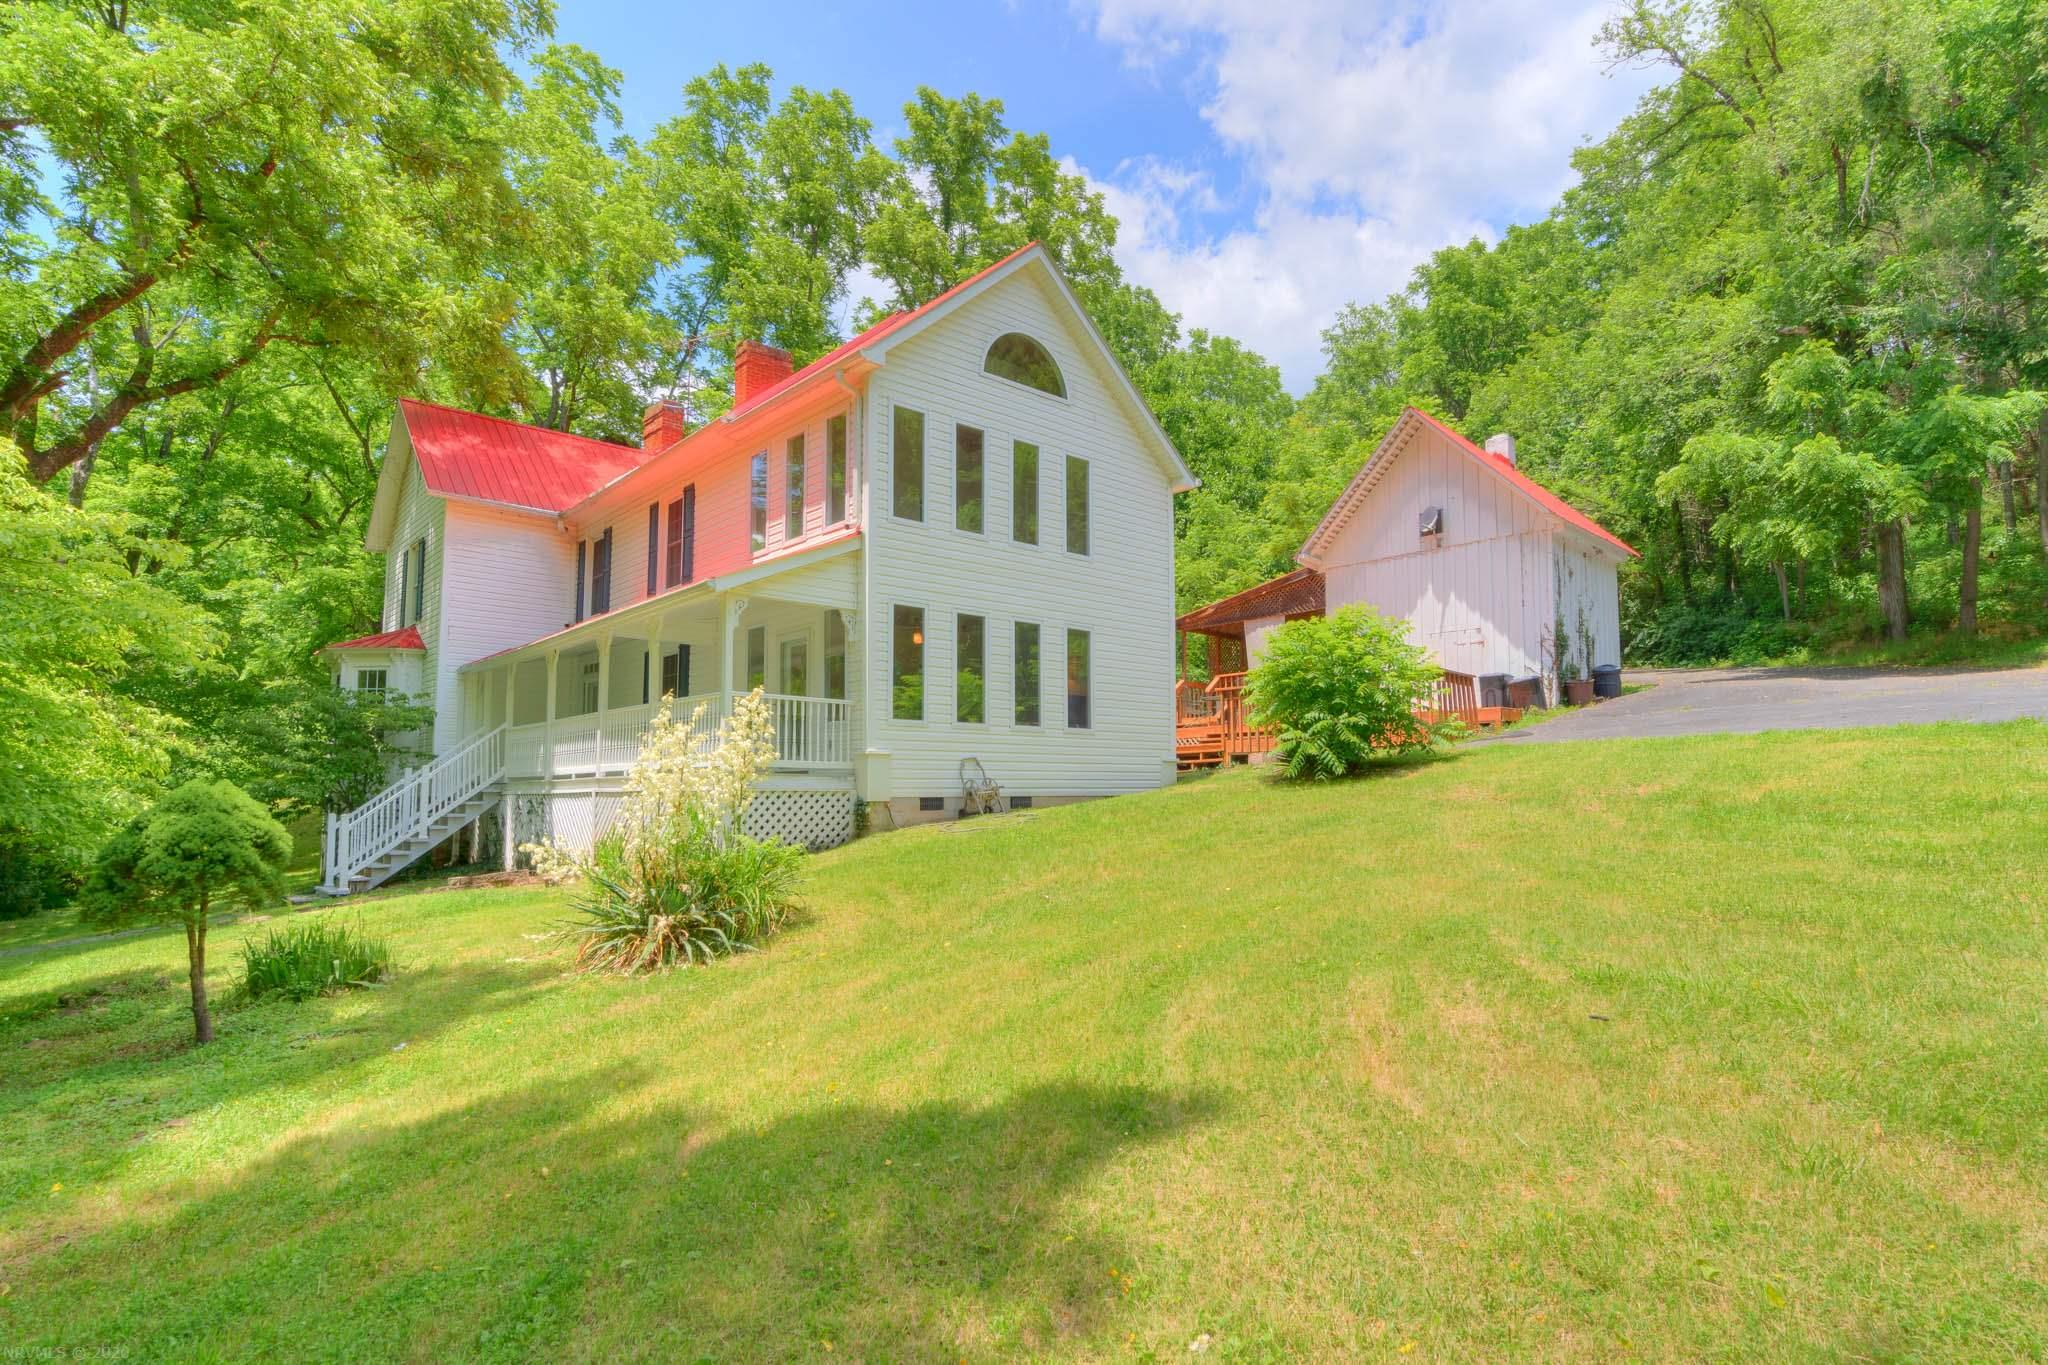 Classic restored farmhouse situated on 14 acres with Pine Creek running the entire length of the property. Filled with unique features that blend old world charm with modern conveniences including Oak and Yellow Pine floors, metal roof, vinyl siding, extensive decking, etched glass doors and 5 fireplaces. Boasting a living room and sitting room with fireplaces and the modern kitchen is filled to the brim with cabinet and counter space, plus a built-in desk, wall oven and cook-top. Laundry room and a porch complete the main level. A primary suite offers a private bath while the additional three bedrooms share a unique bathroom with two vanities, spa tub and walk-in shower. A sitting area with bath access and an alluring 2 story sunroom completed the upstairs. The newly constructed post and beam cabin / outbuilding is sure to impress! Come walk across the bridge, listen to the rippling creek and make this special property  Your Home!